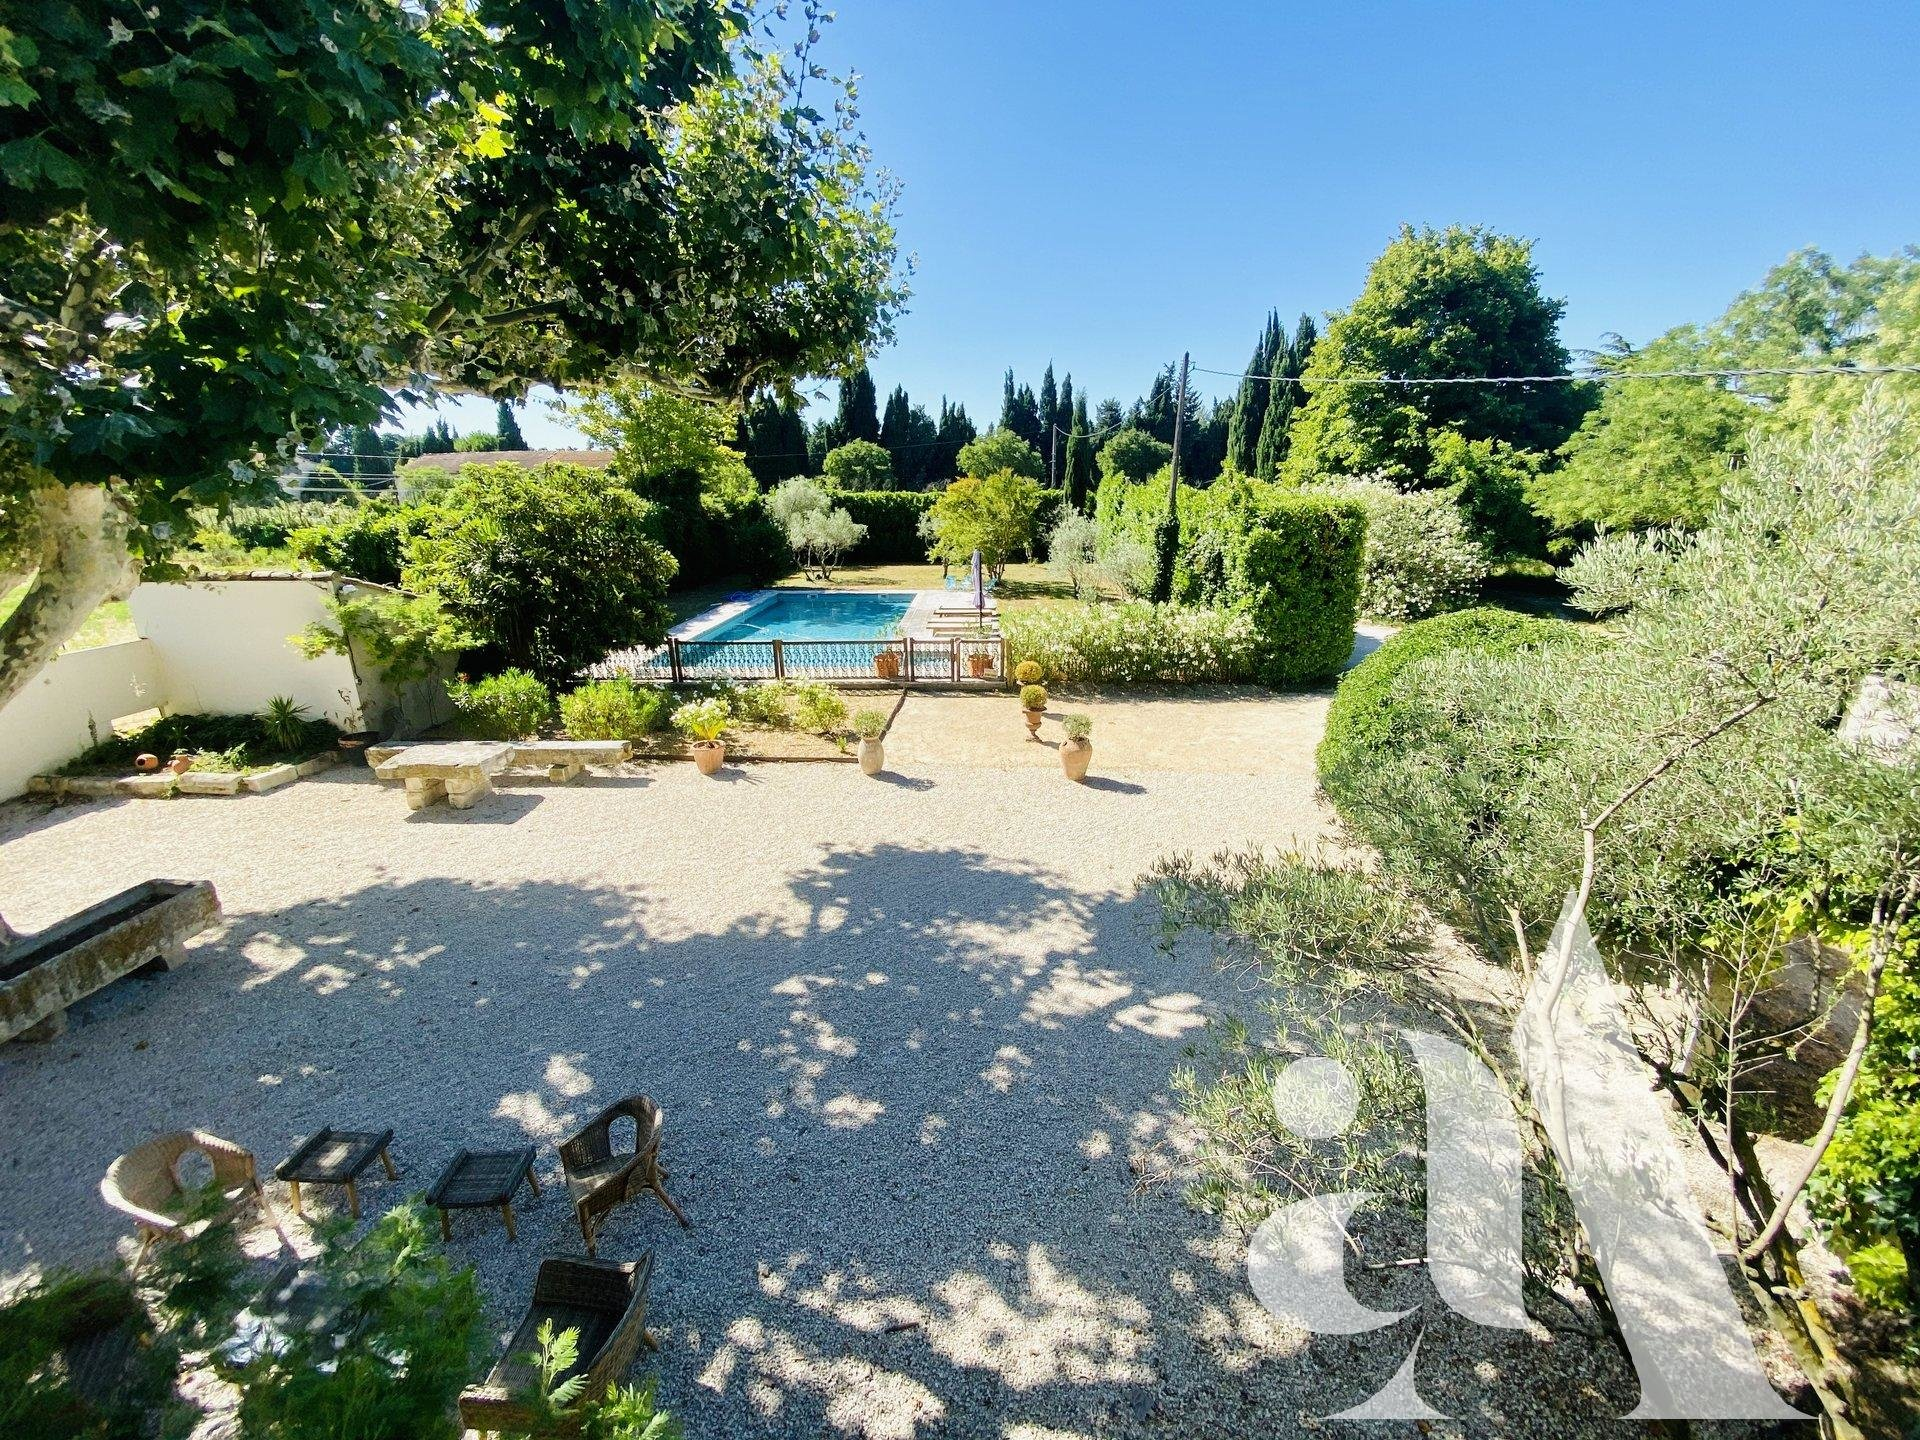 MAS SARRAZIN-CHATEAURENARD - 7 peoples- 4 bedrooms